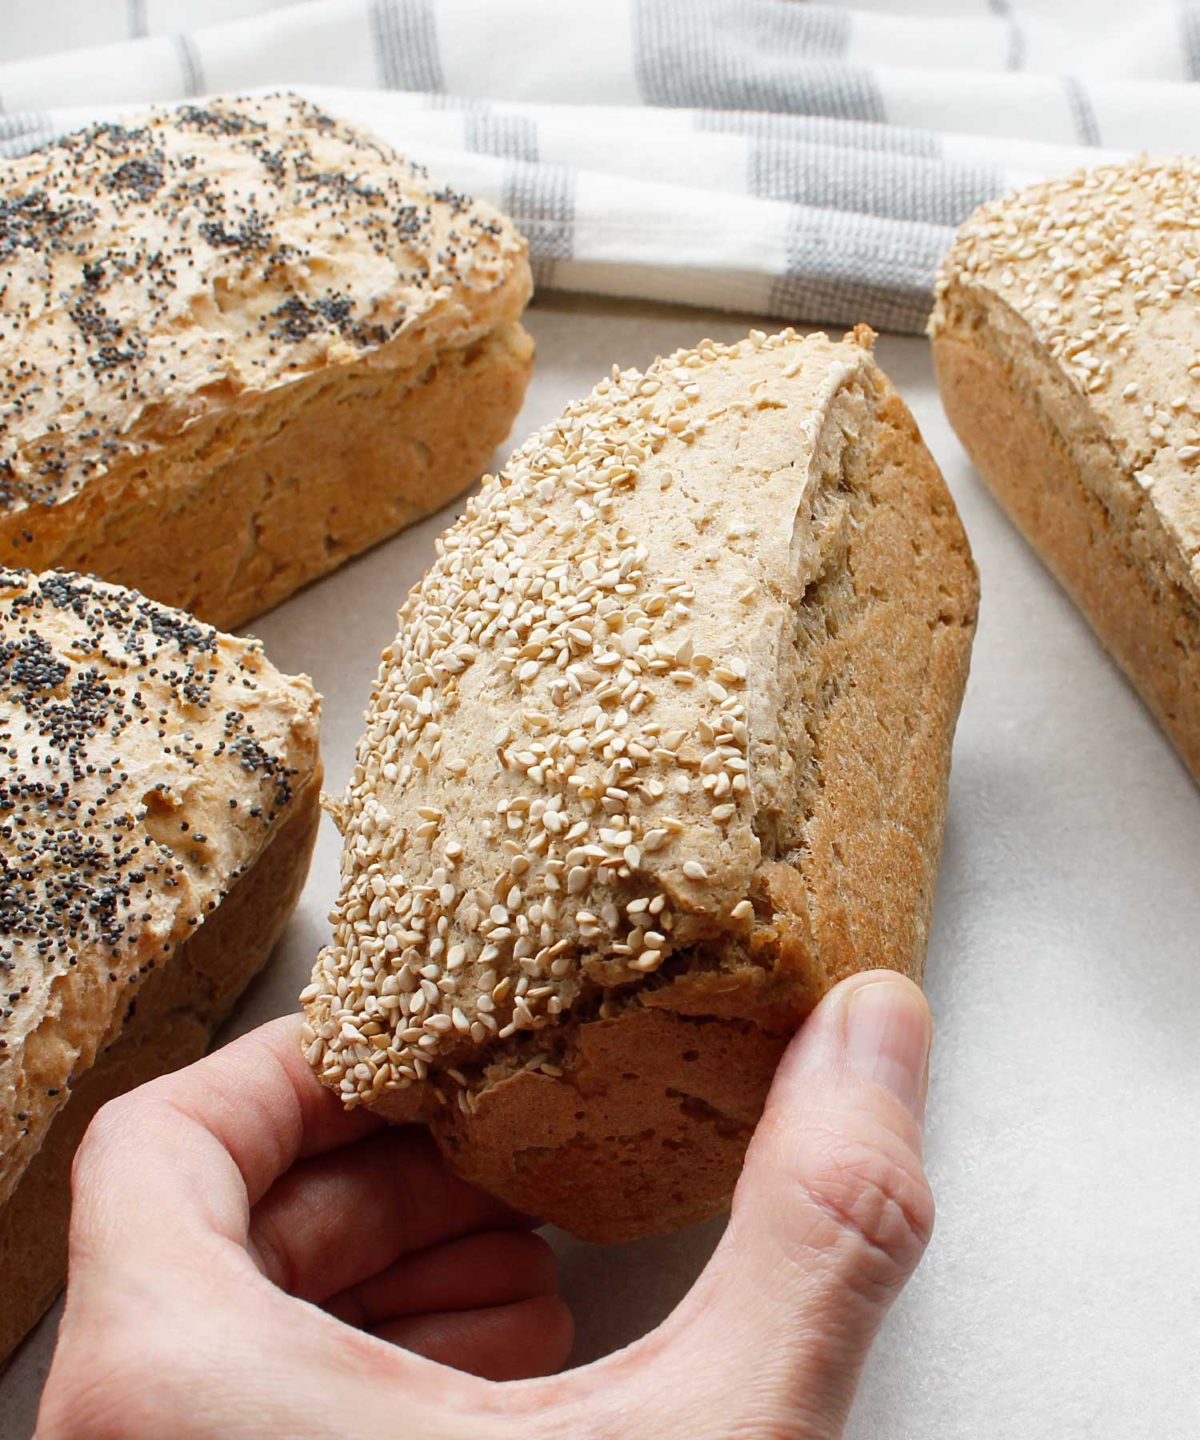 Showing the final size of a mini yeast-free, gluten-free, vegan loaves.